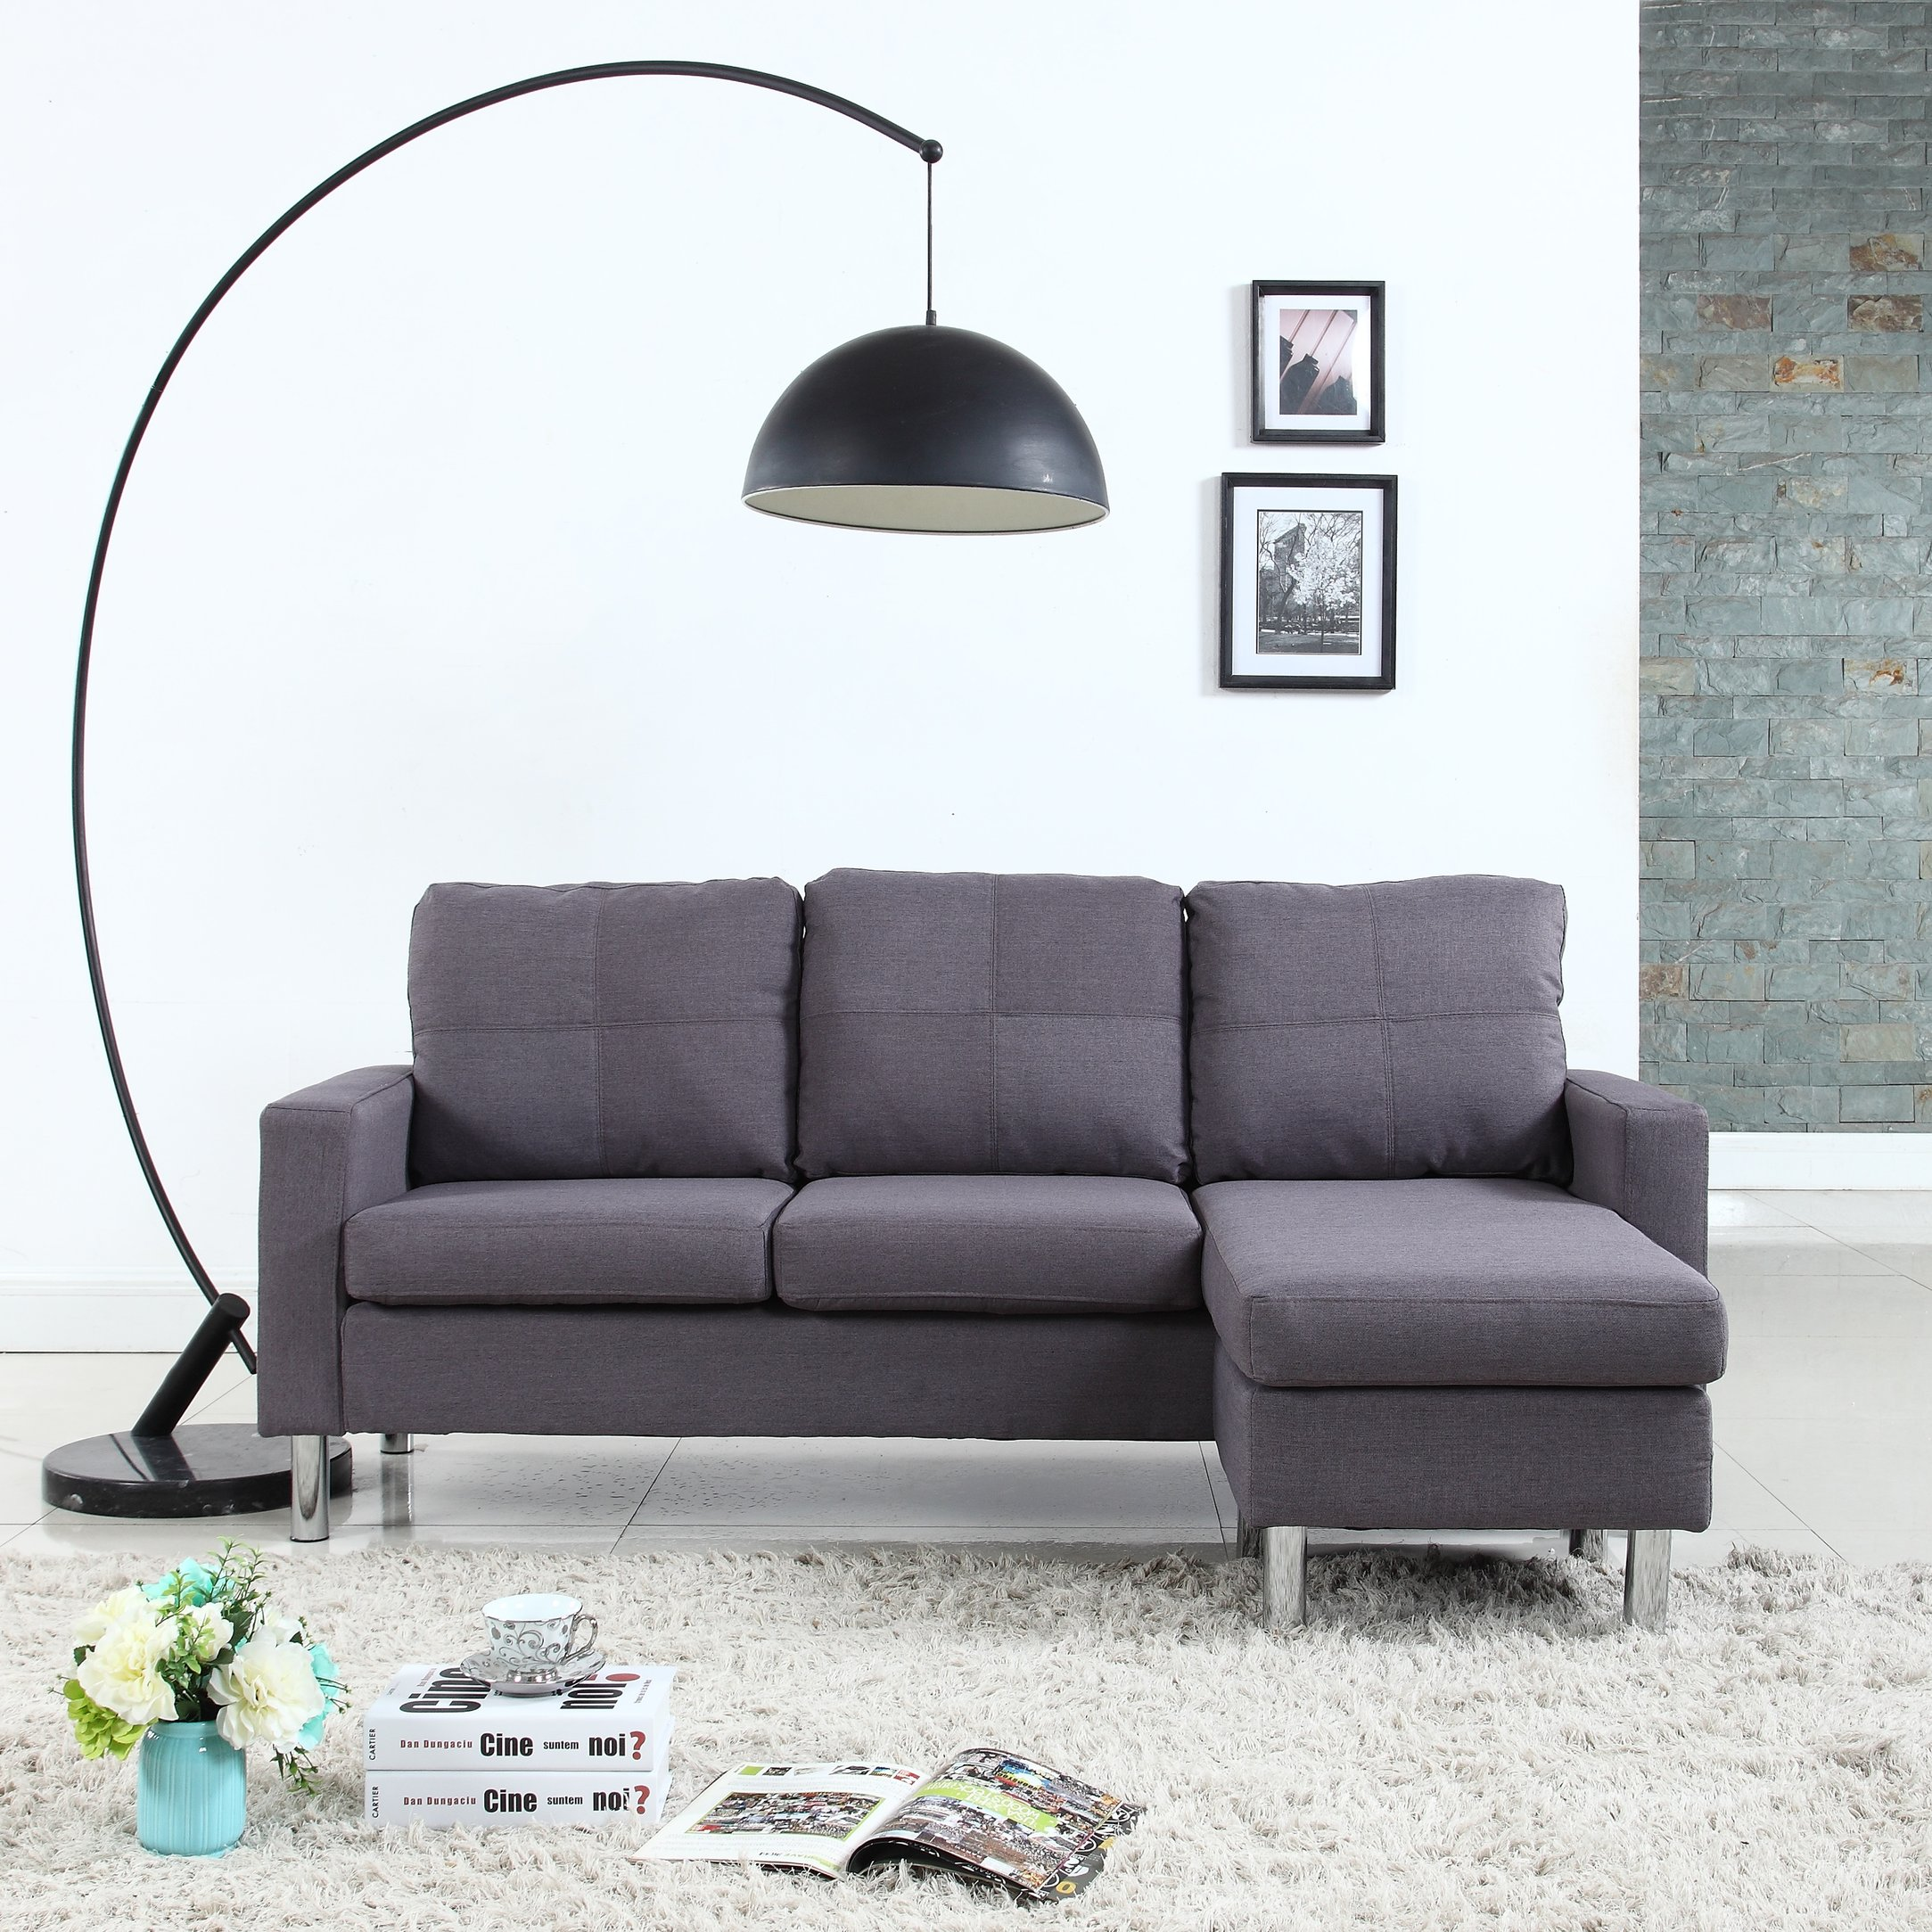 Brilliant Details About Modern Living Room Reversible Linen Fabric Sectional Sofa Small Space Light Grey Home Remodeling Inspirations Genioncuboardxyz